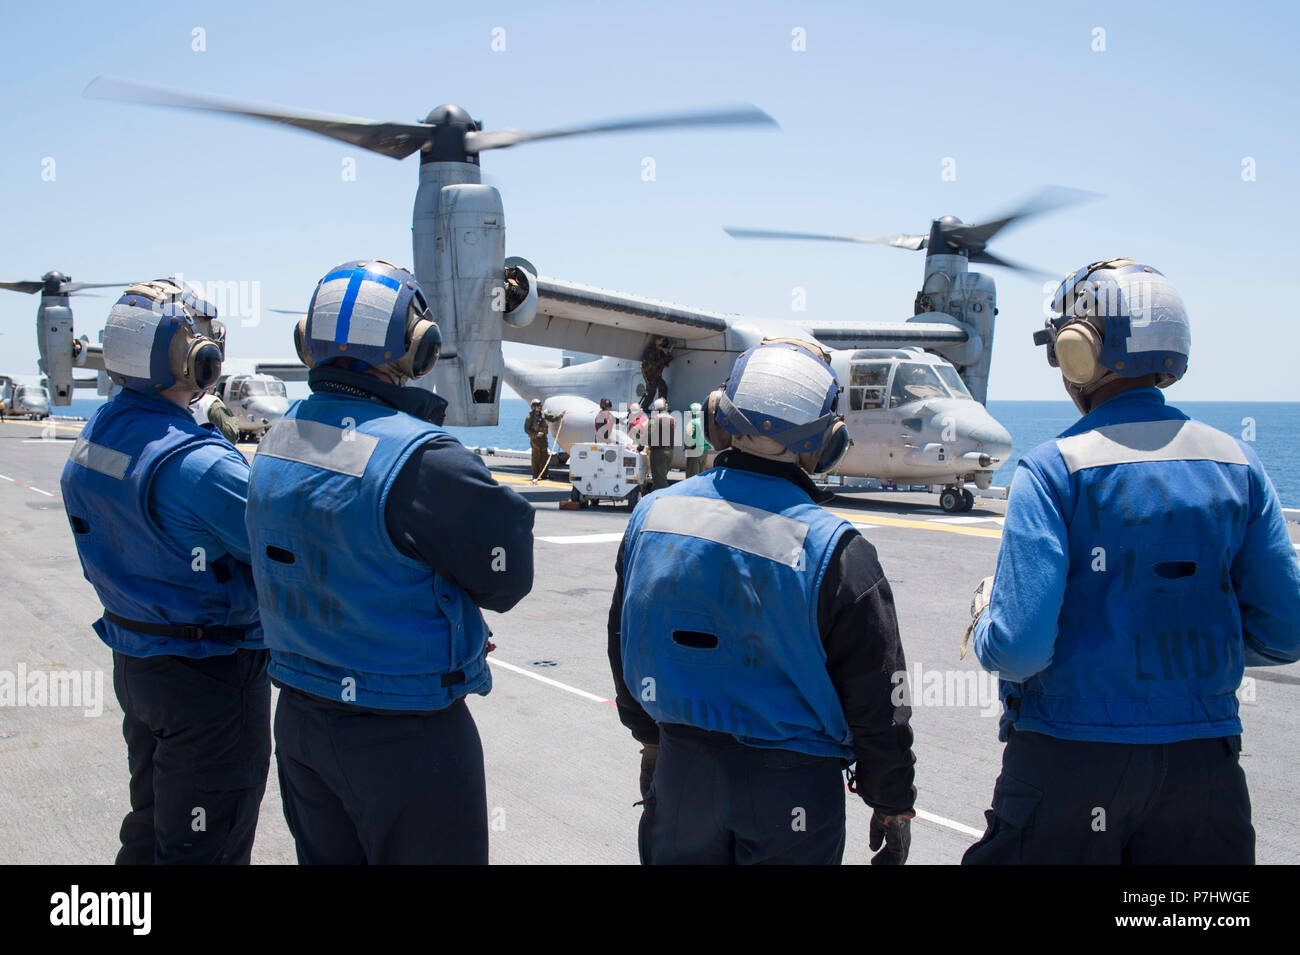 """180703-N-RD713-218 PACIFIC OCEAN,  (July 3, 2018) Air department Sailors, assigned to the amphibious assault ship USS Bonhomme Richard (LHD 6), look on as MV-22B Ospreys, assigned to the """"Red Lions"""" of Marine Medium Tiltrotor Squadron (VMM) 363, embark the ship. Bonhomme Richard is currently underway in the U.S. 3rd Fleet area of operations. (U.S. Navy photo by Mass Communication Specialist 3rd Class Zachary DiPadova) Stock Photo"""